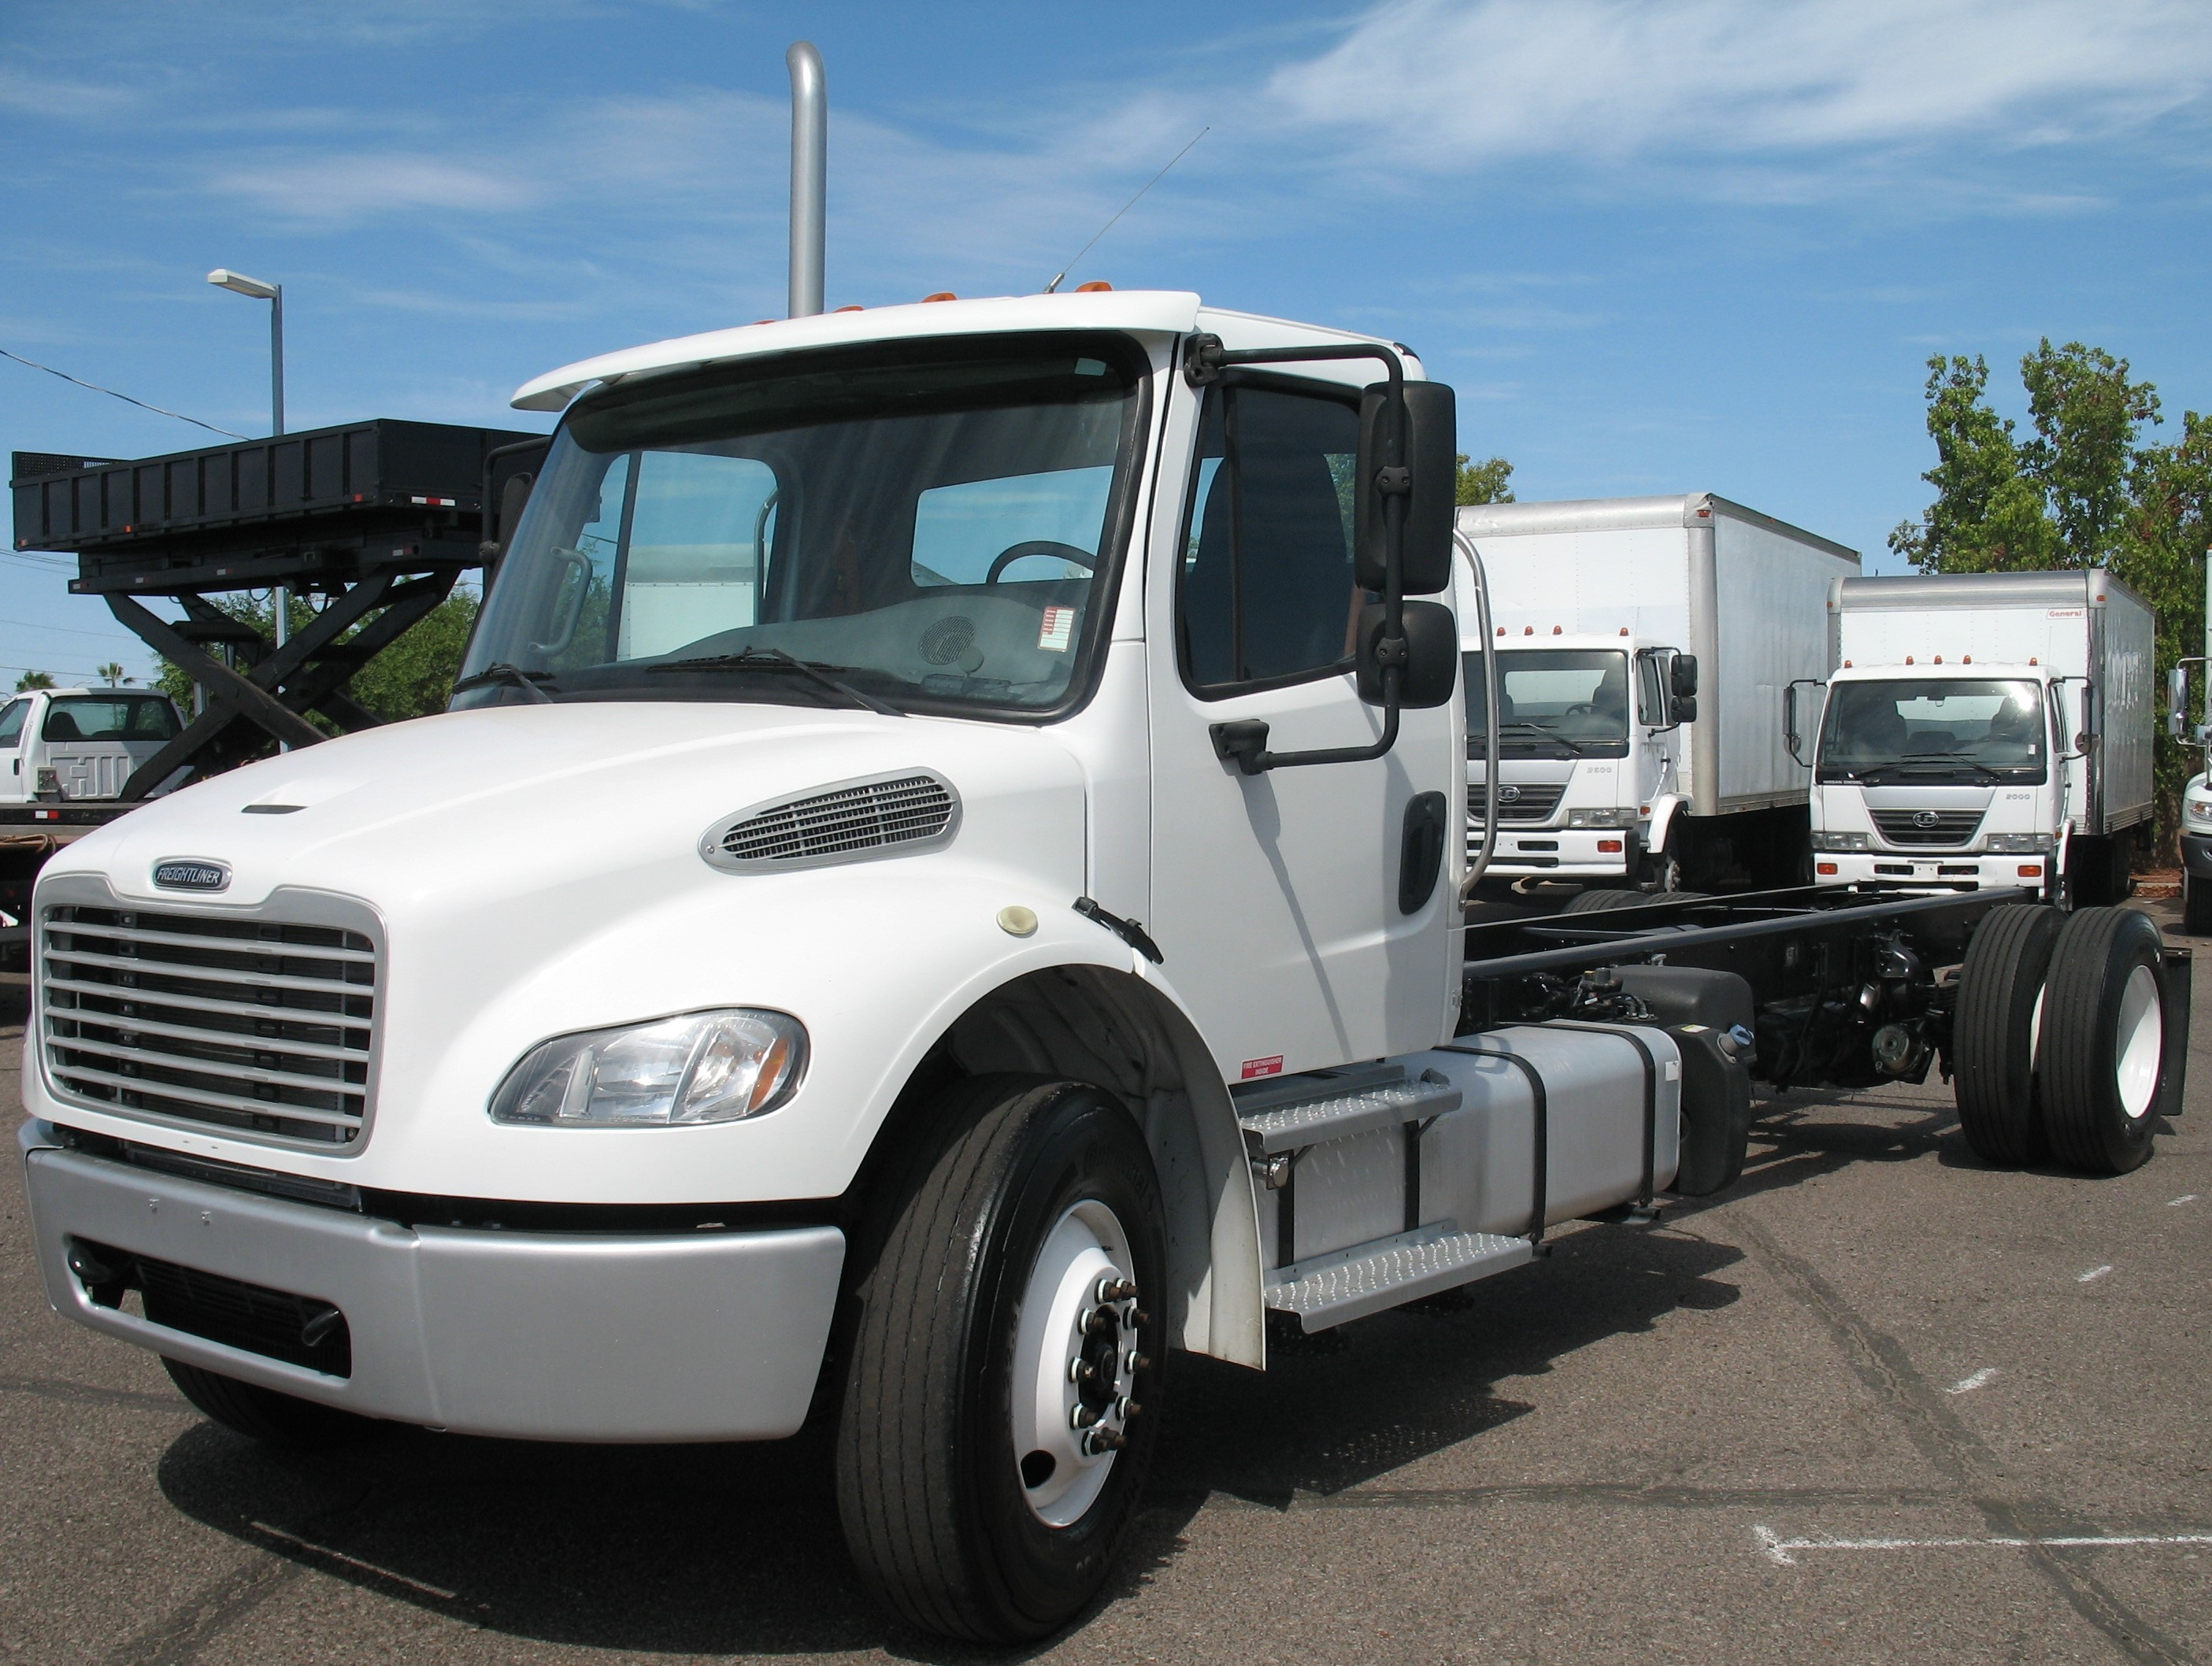 Used, 2014, Freightliner, M2 106, Cab / Chassis Trucks